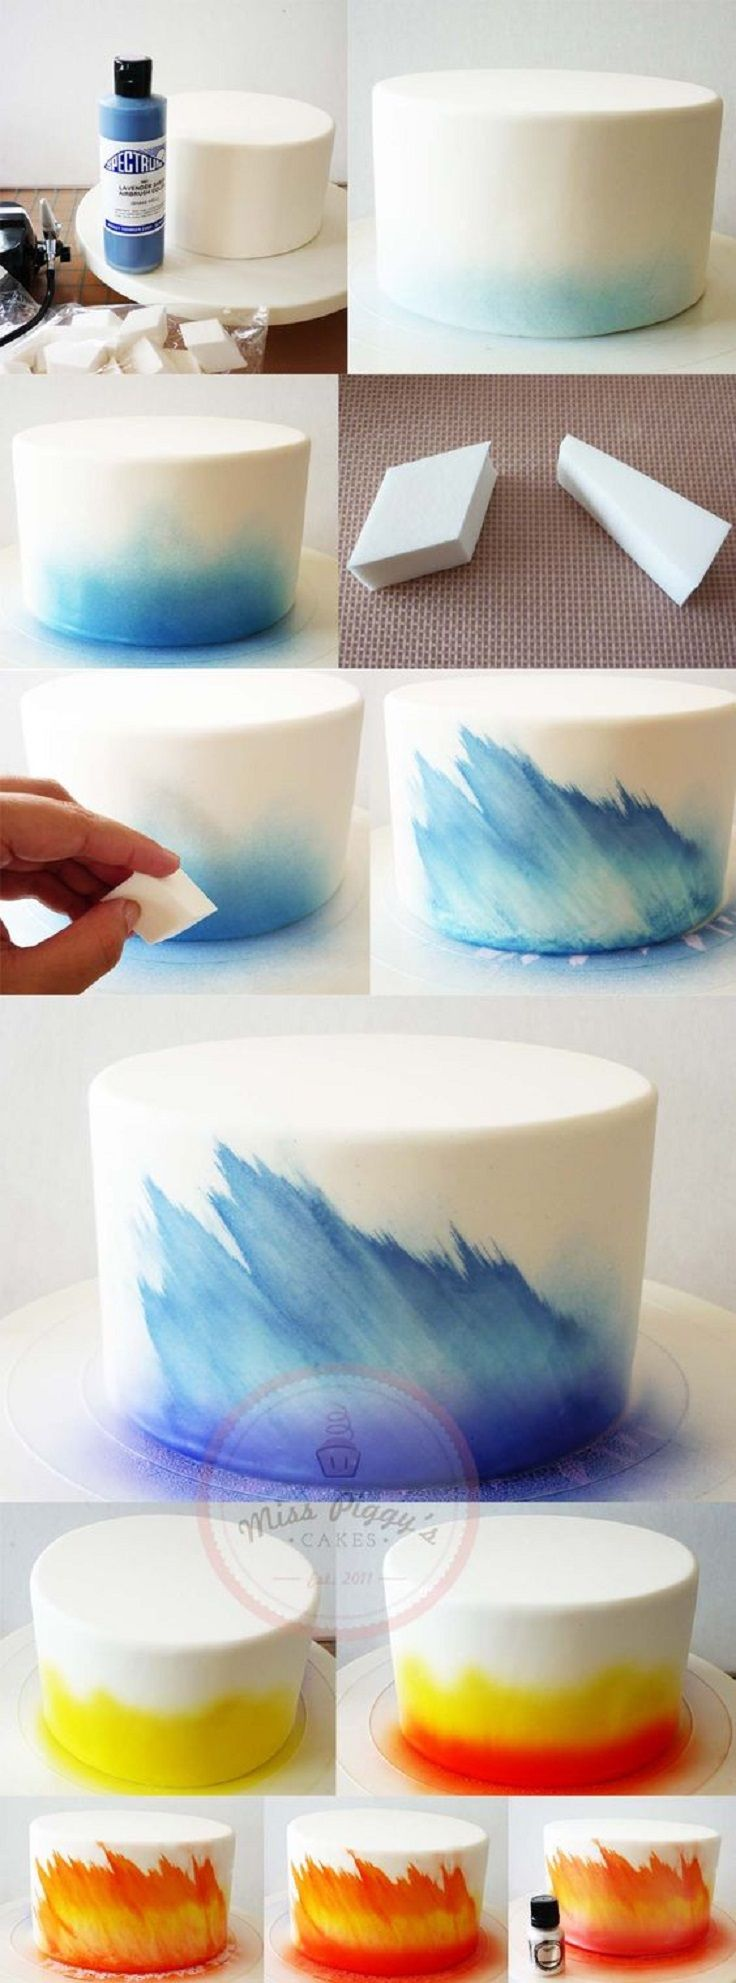 Cake Decorating How To Make Fire : 25+ best ideas about Ombre Cake on Pinterest Pink ombre ...